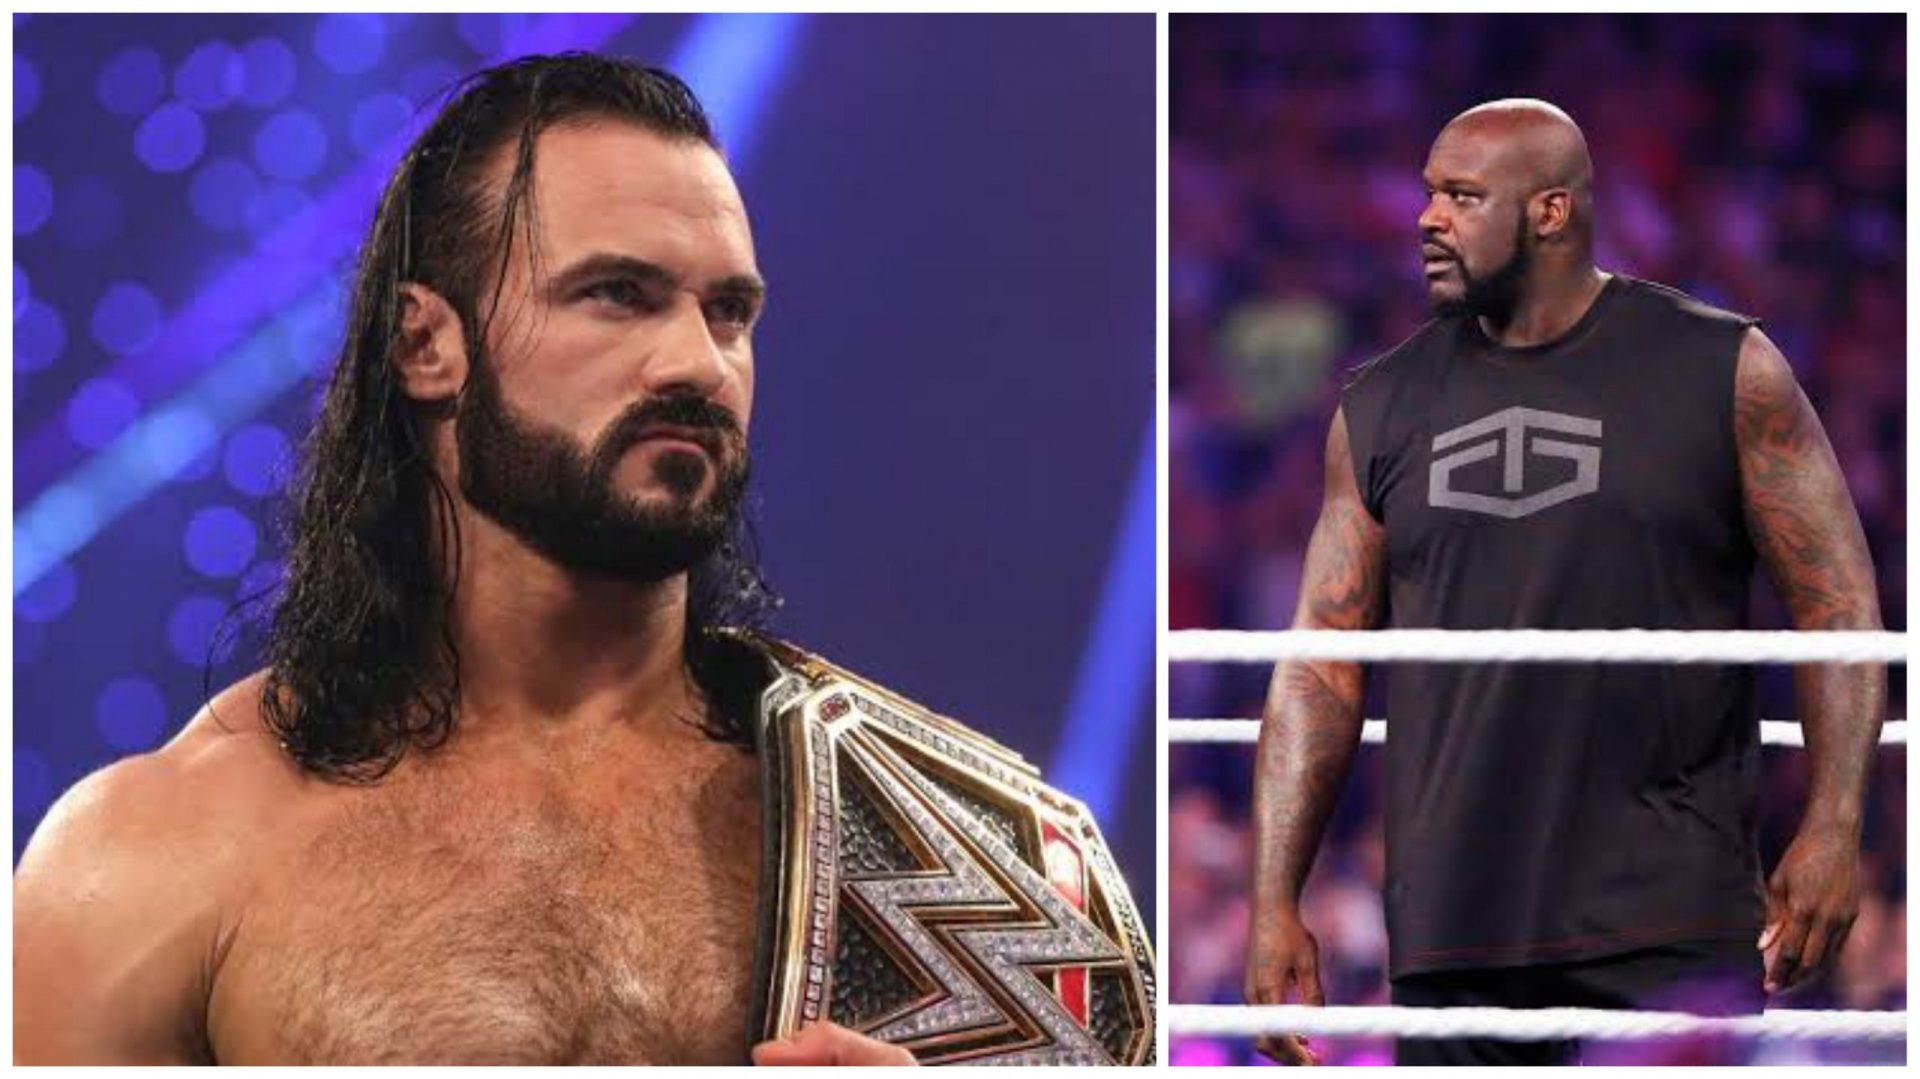 Shaquille O'Neal could have had success as a pro-wrestler, says Drew McIntyre - THE SPORTS ROOM